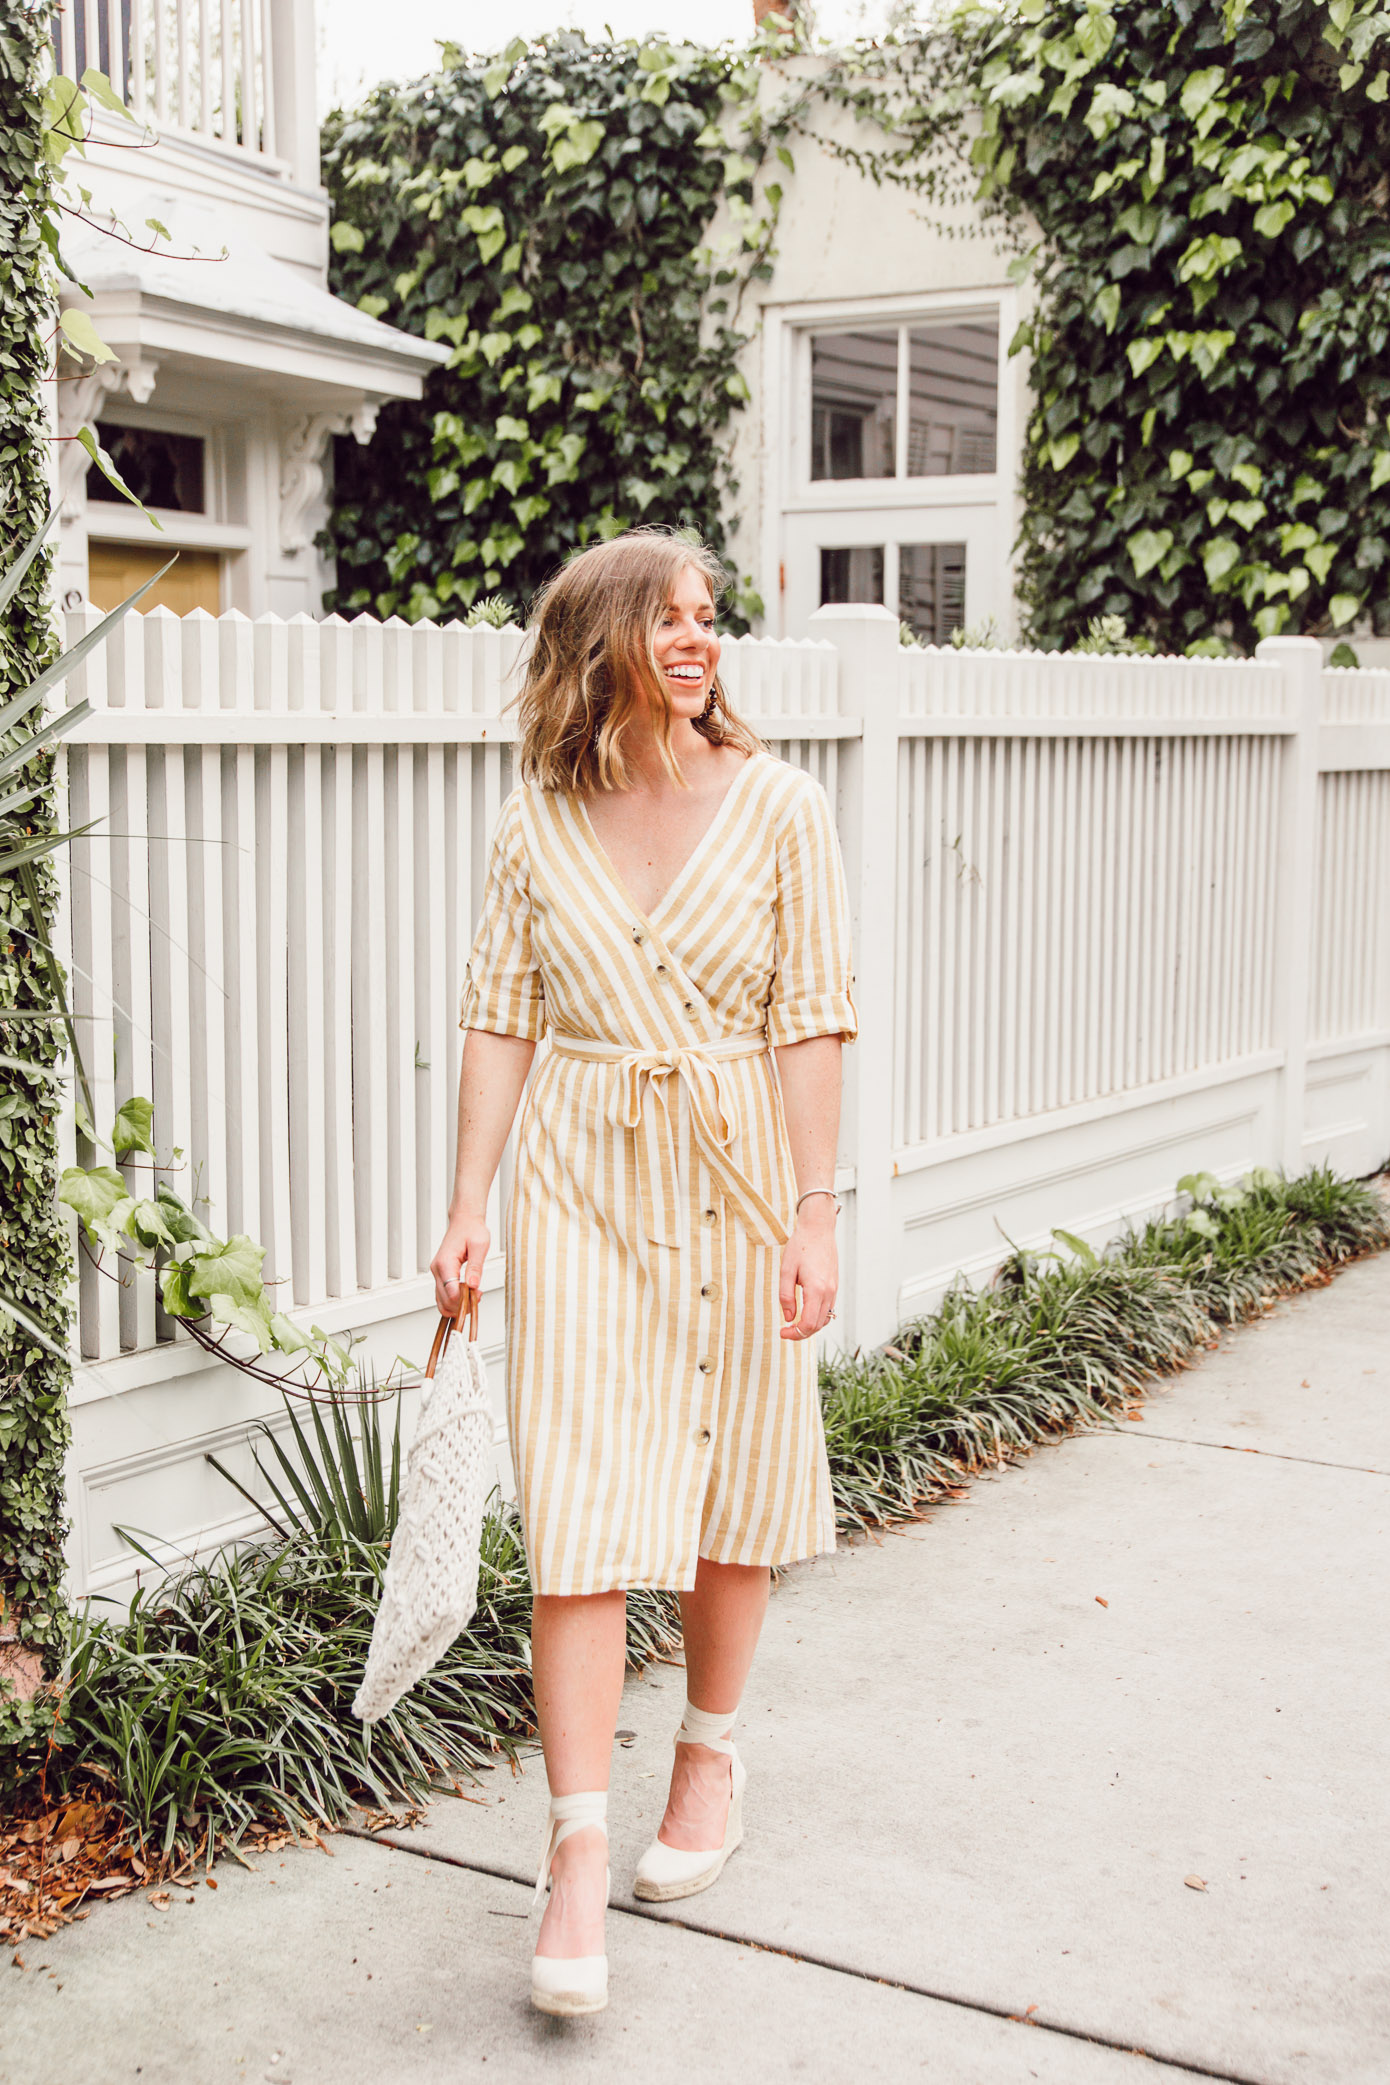 Step into spring in style in this yellow and white midi dress | Louella Reese